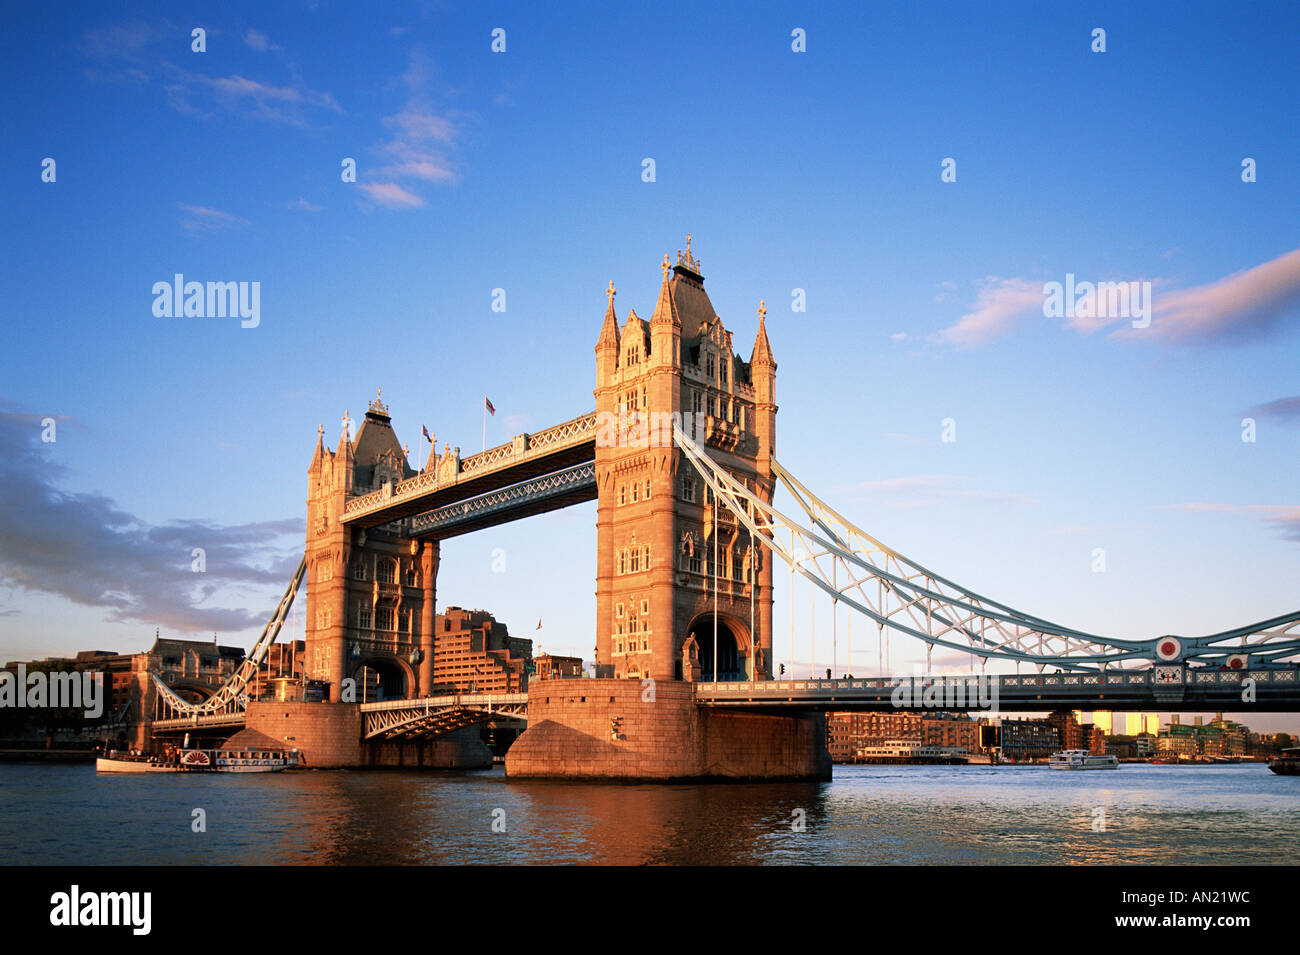 England, London, Tower Bridge - Stock Image